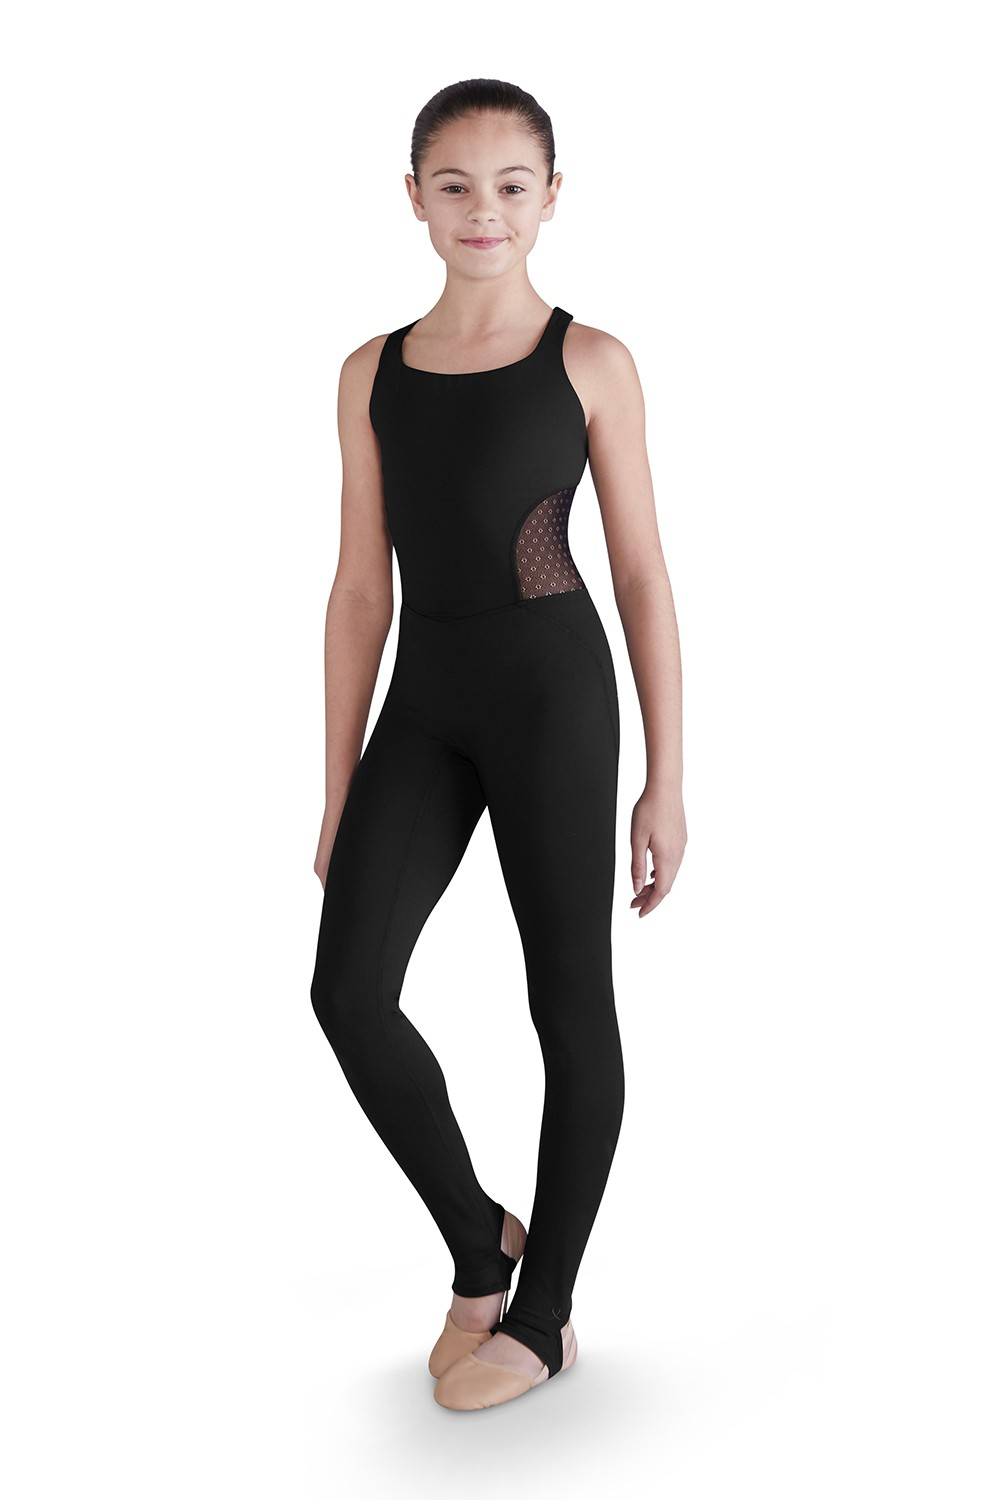 Equita Children's Dance Leotards